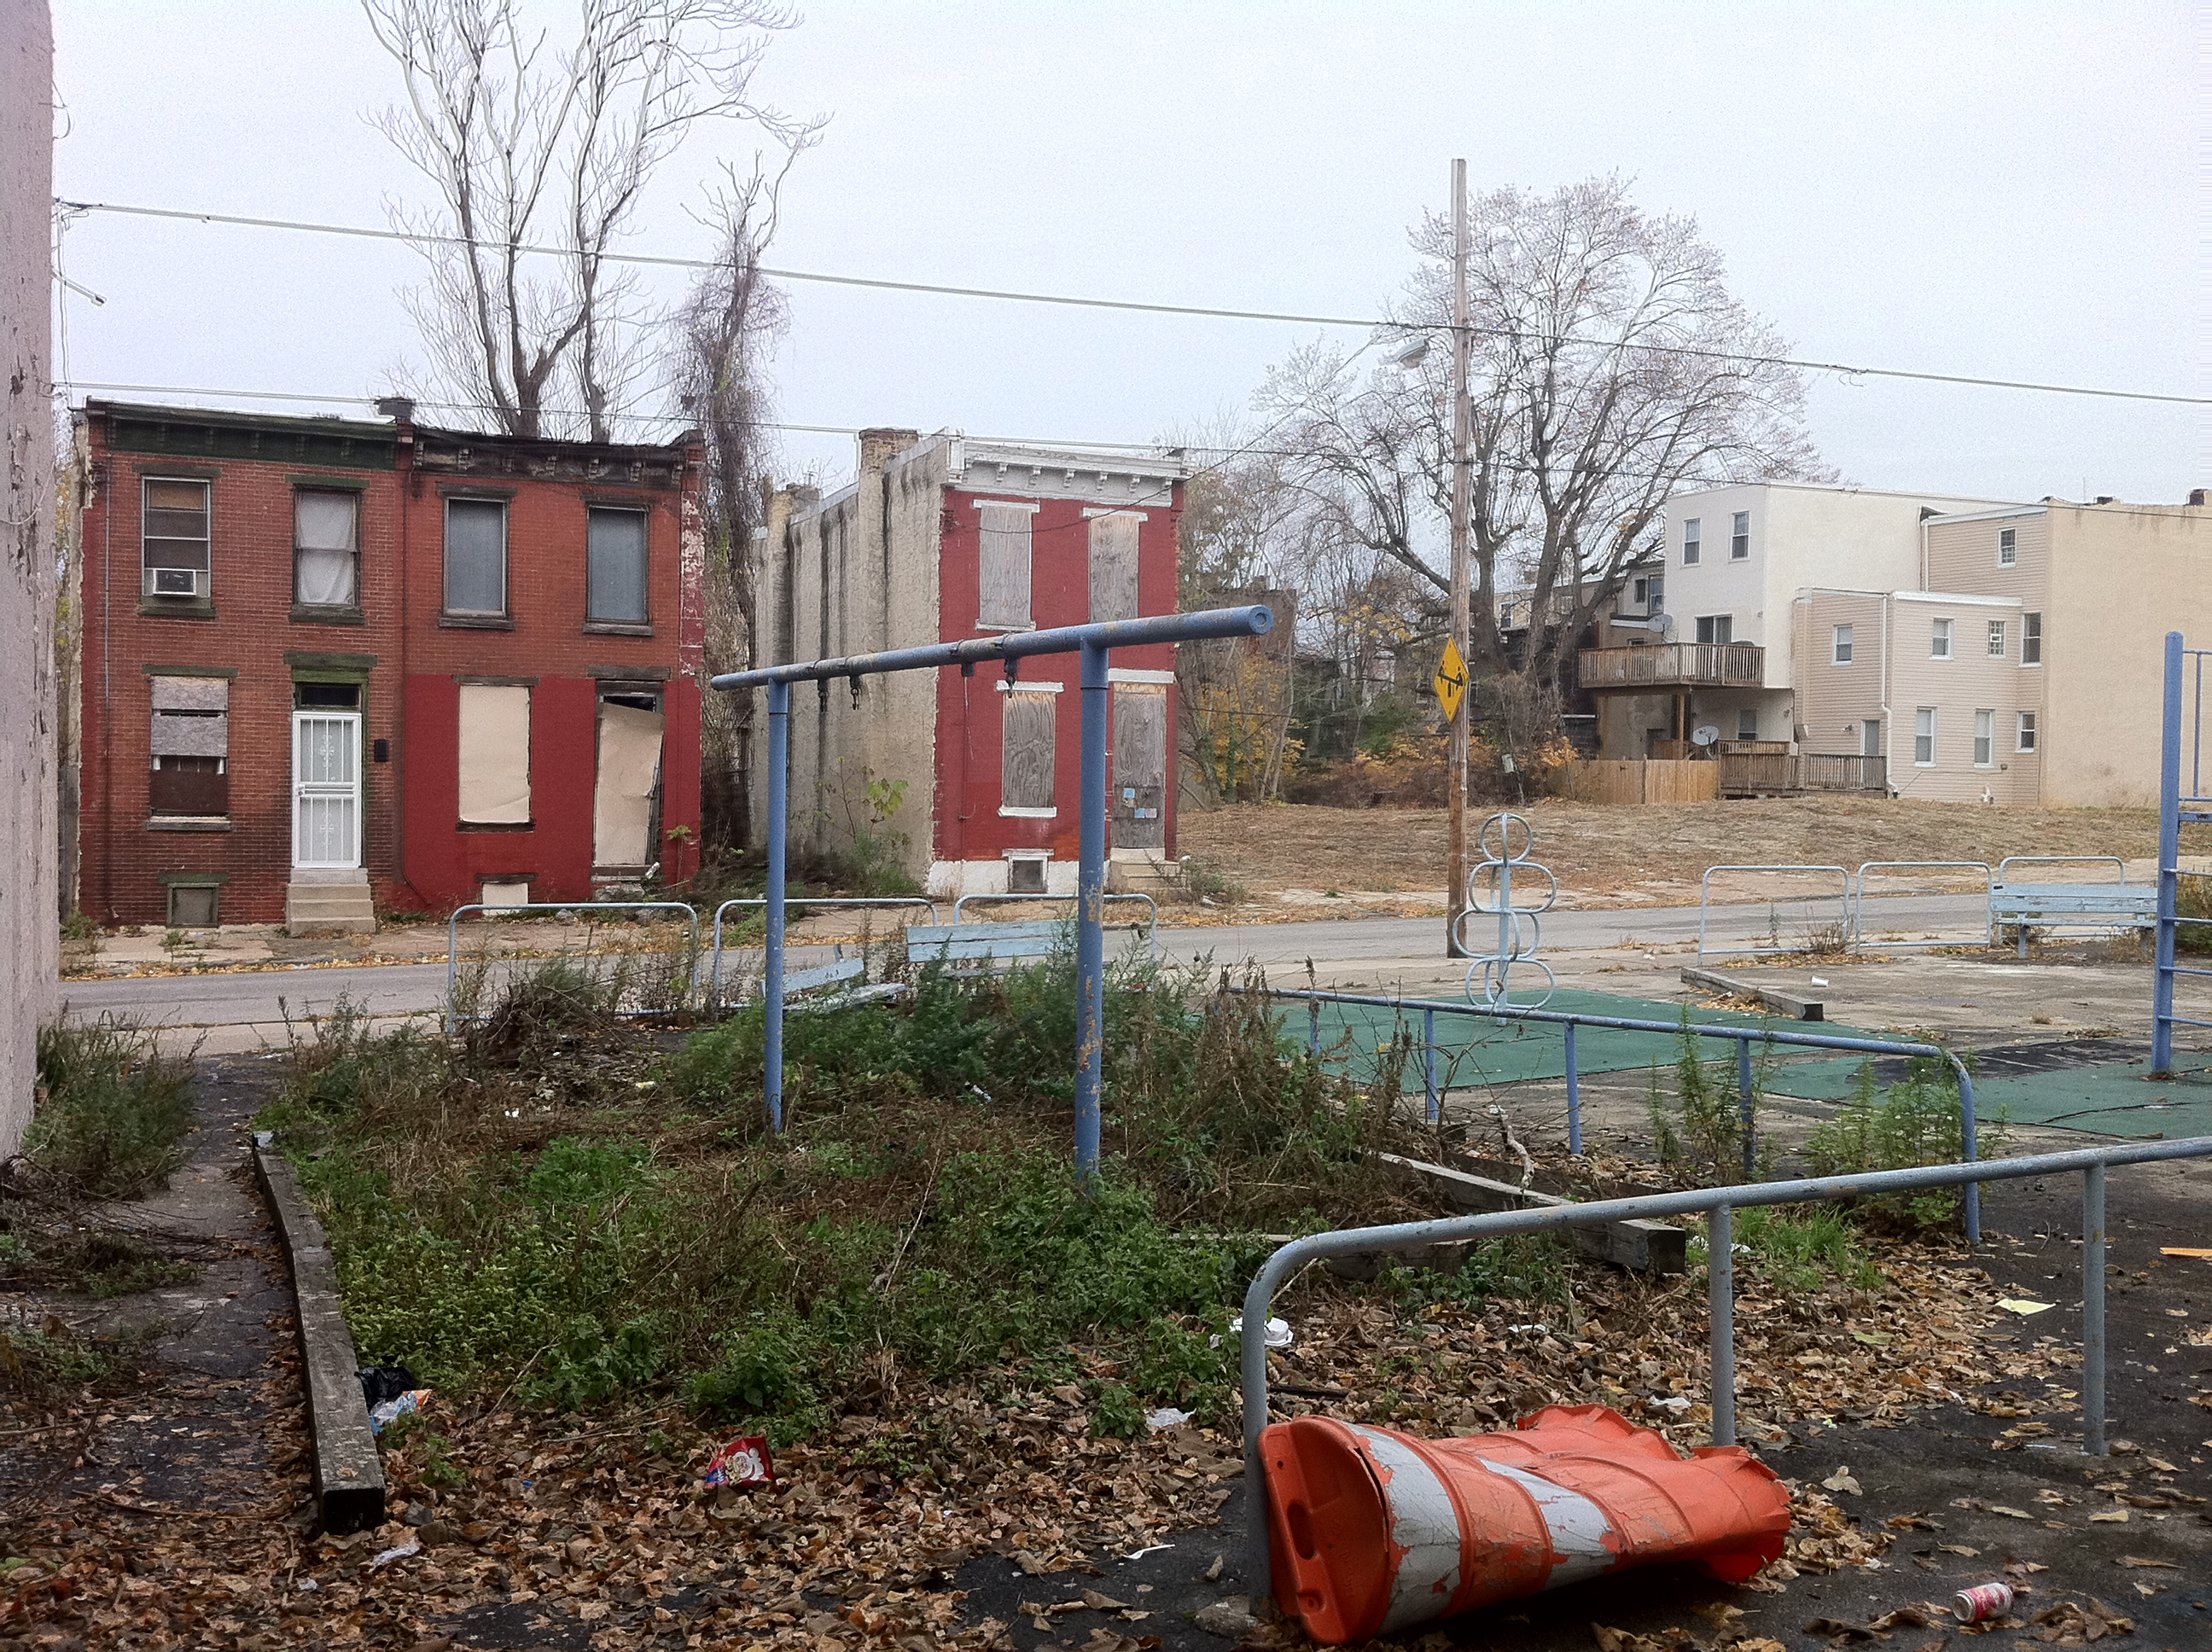 By the summer of 2015, the playground at 37th and Mt. Vernon streets could be completely overhauled. Photo courtesy of The Trust for Public Land